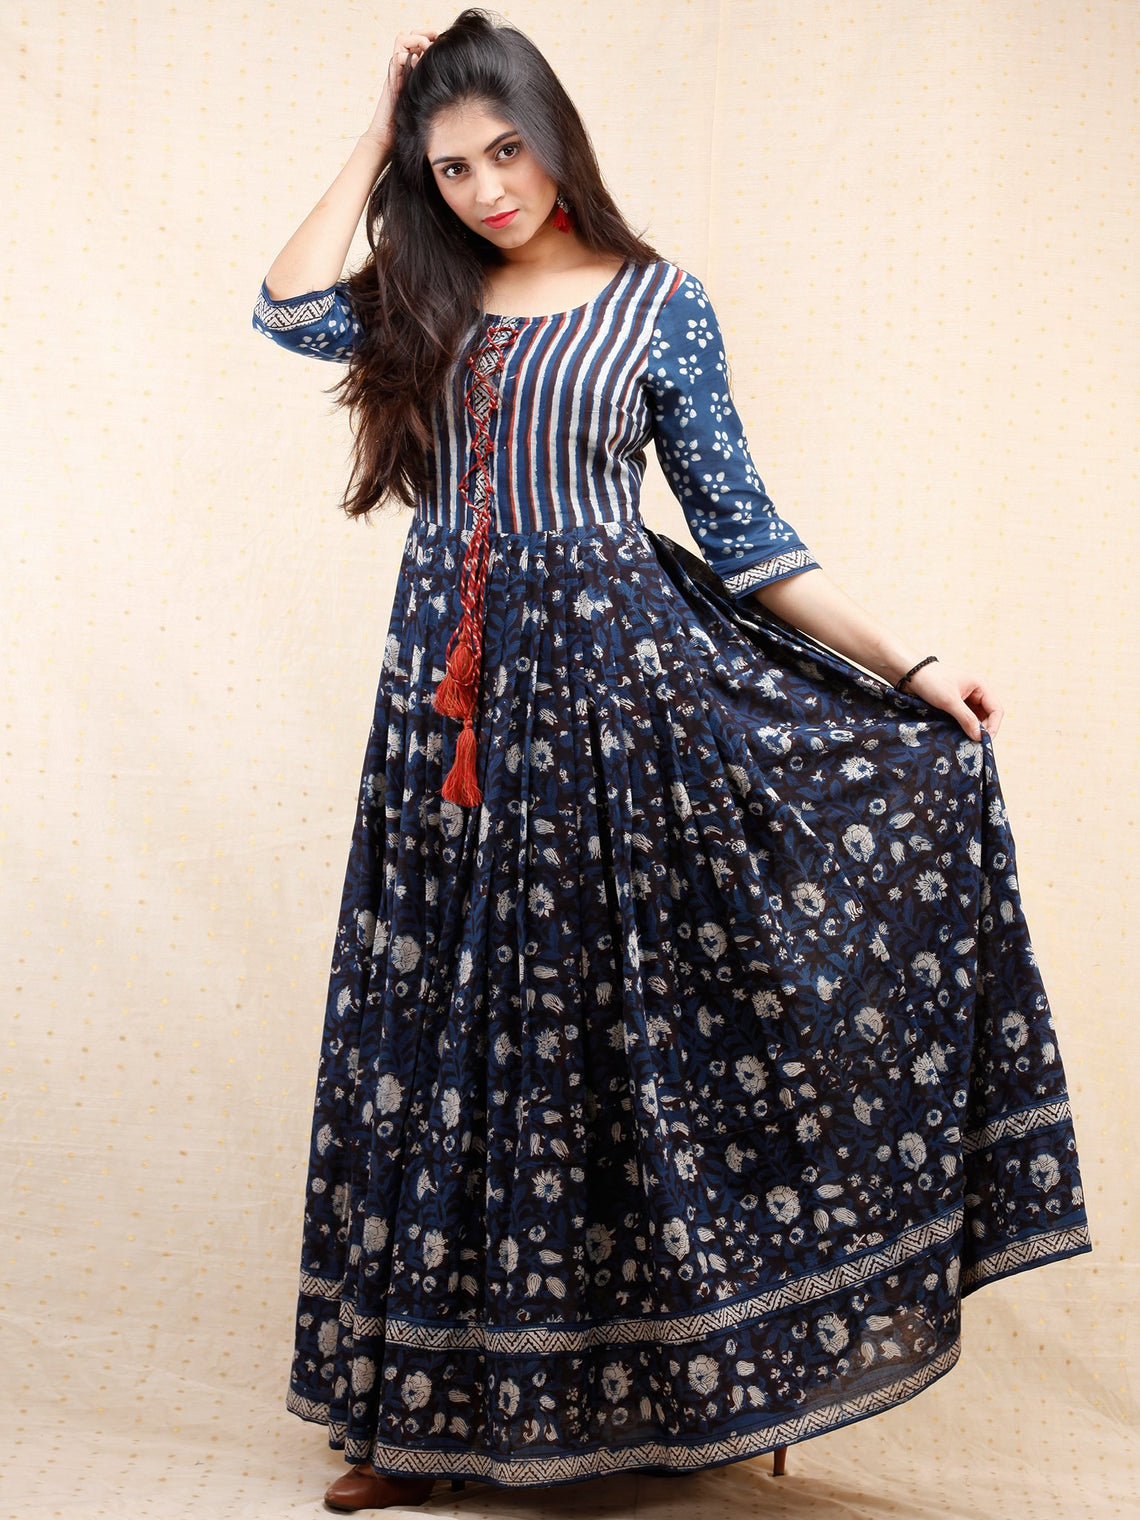 972c2ba35f2 ... Nahiza - Hand Block Printed Long Cotton Pleated Dress With Tassels -  DS86F001 ...